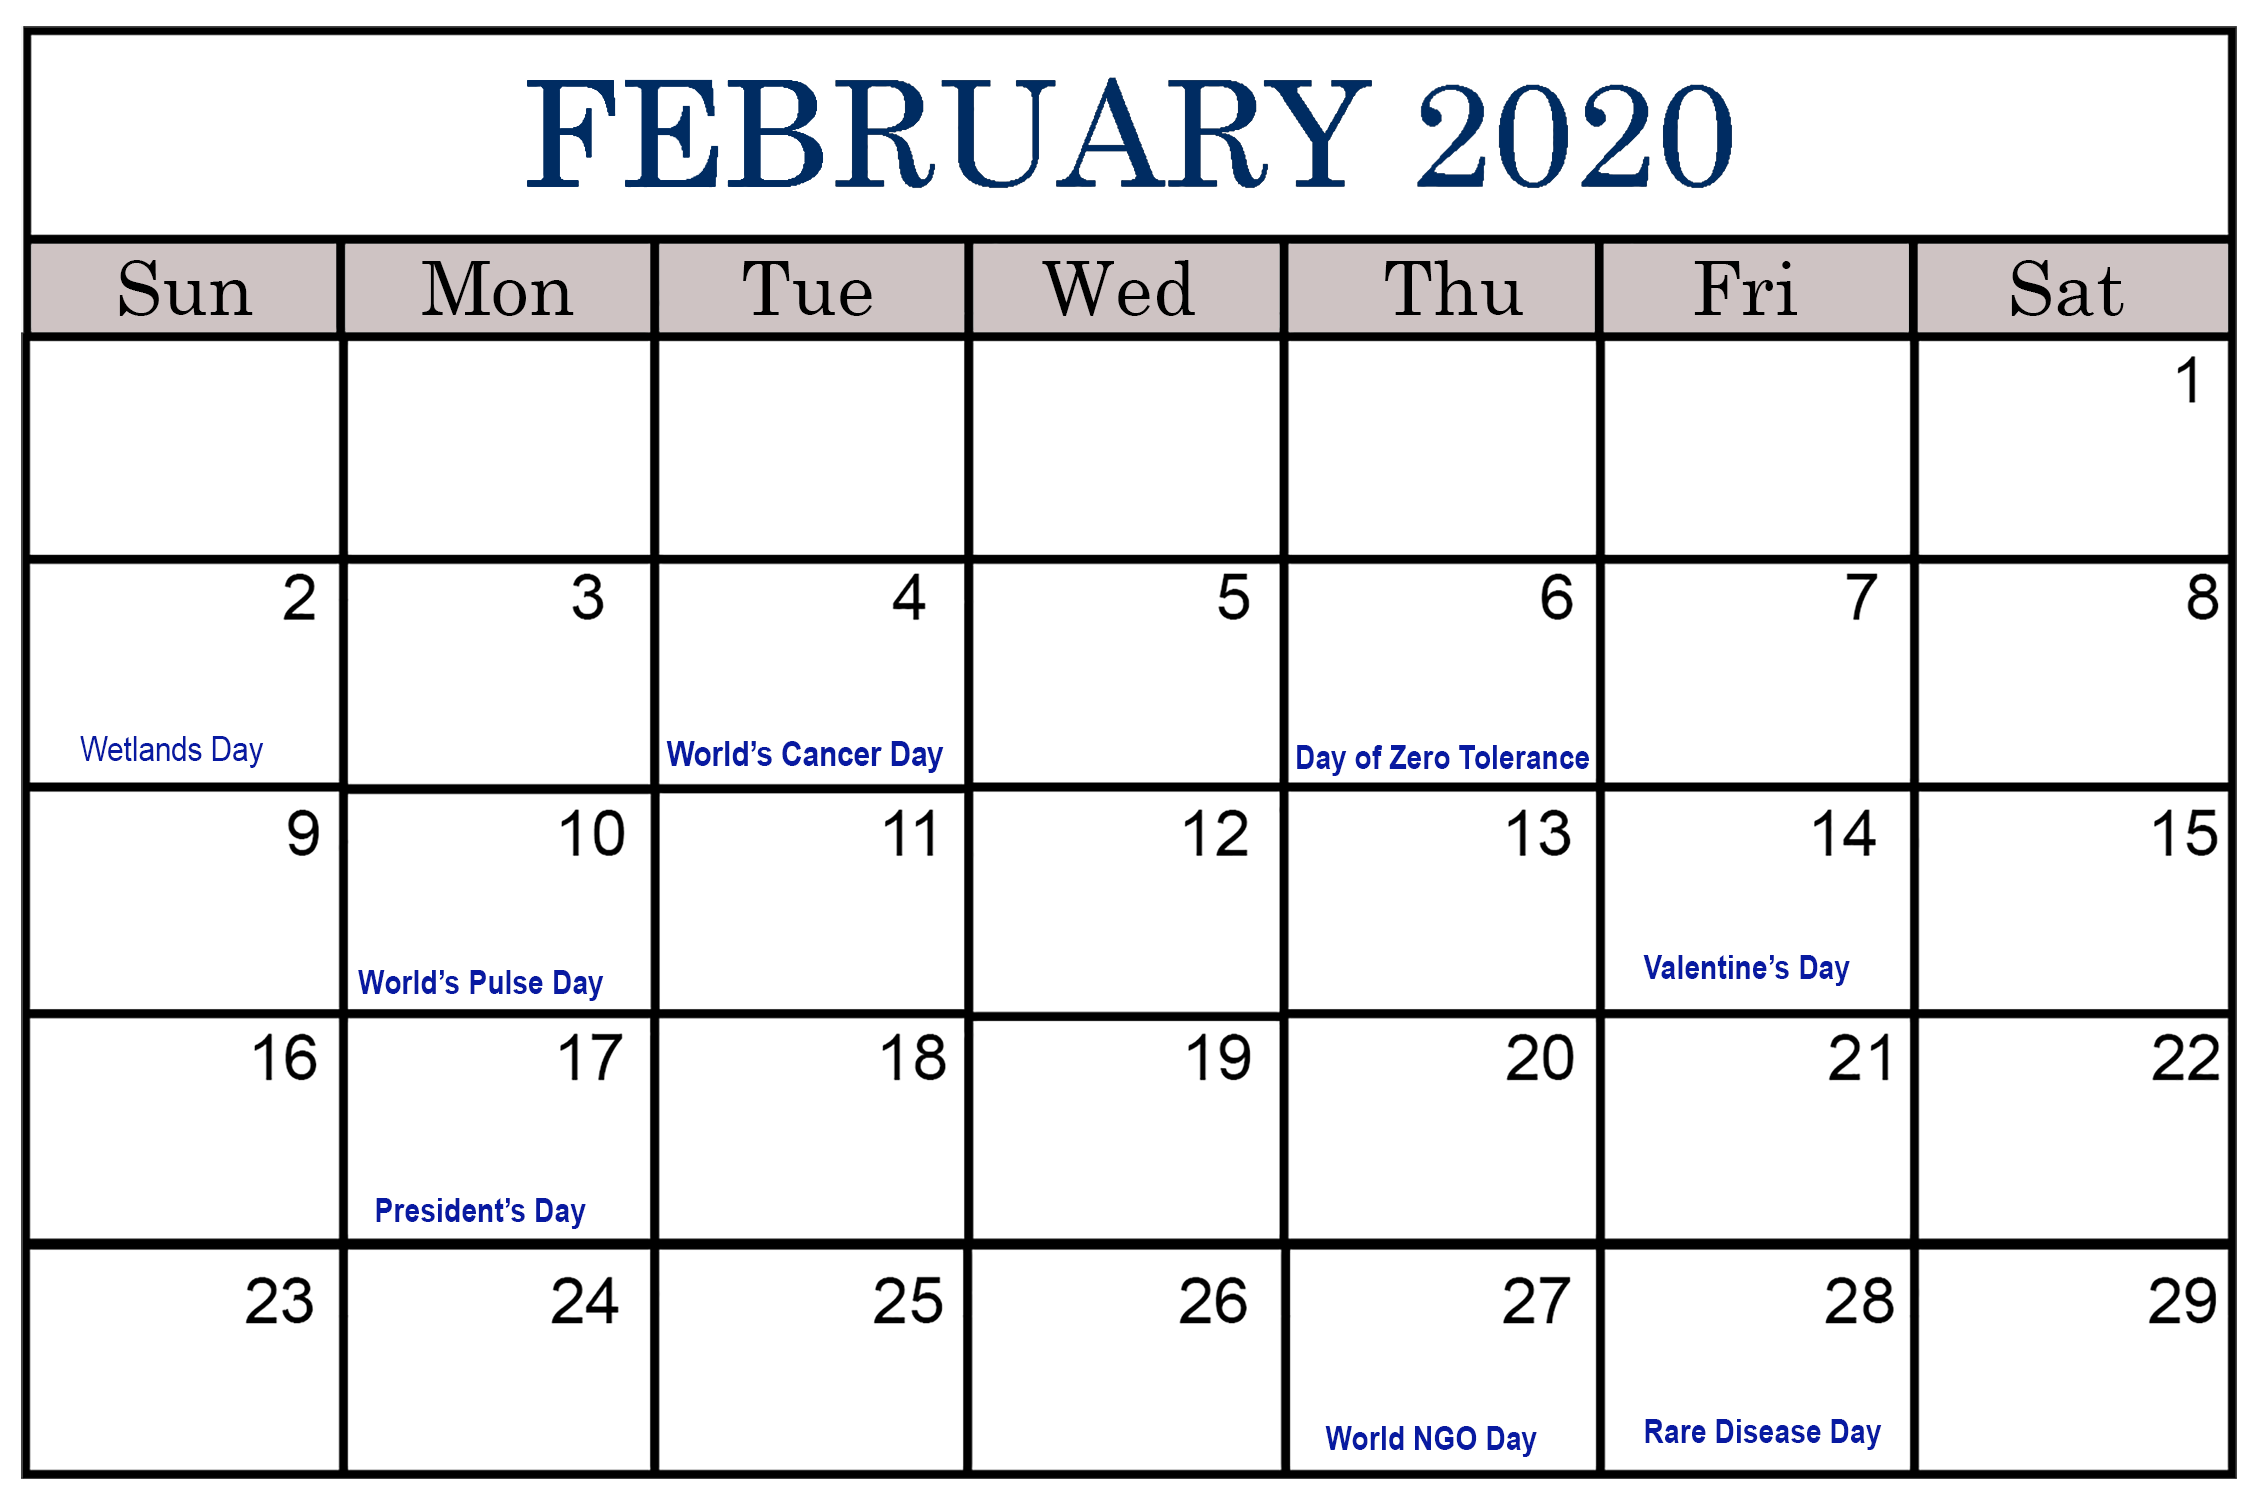 February 2020 Calendar Printable Free Holidays